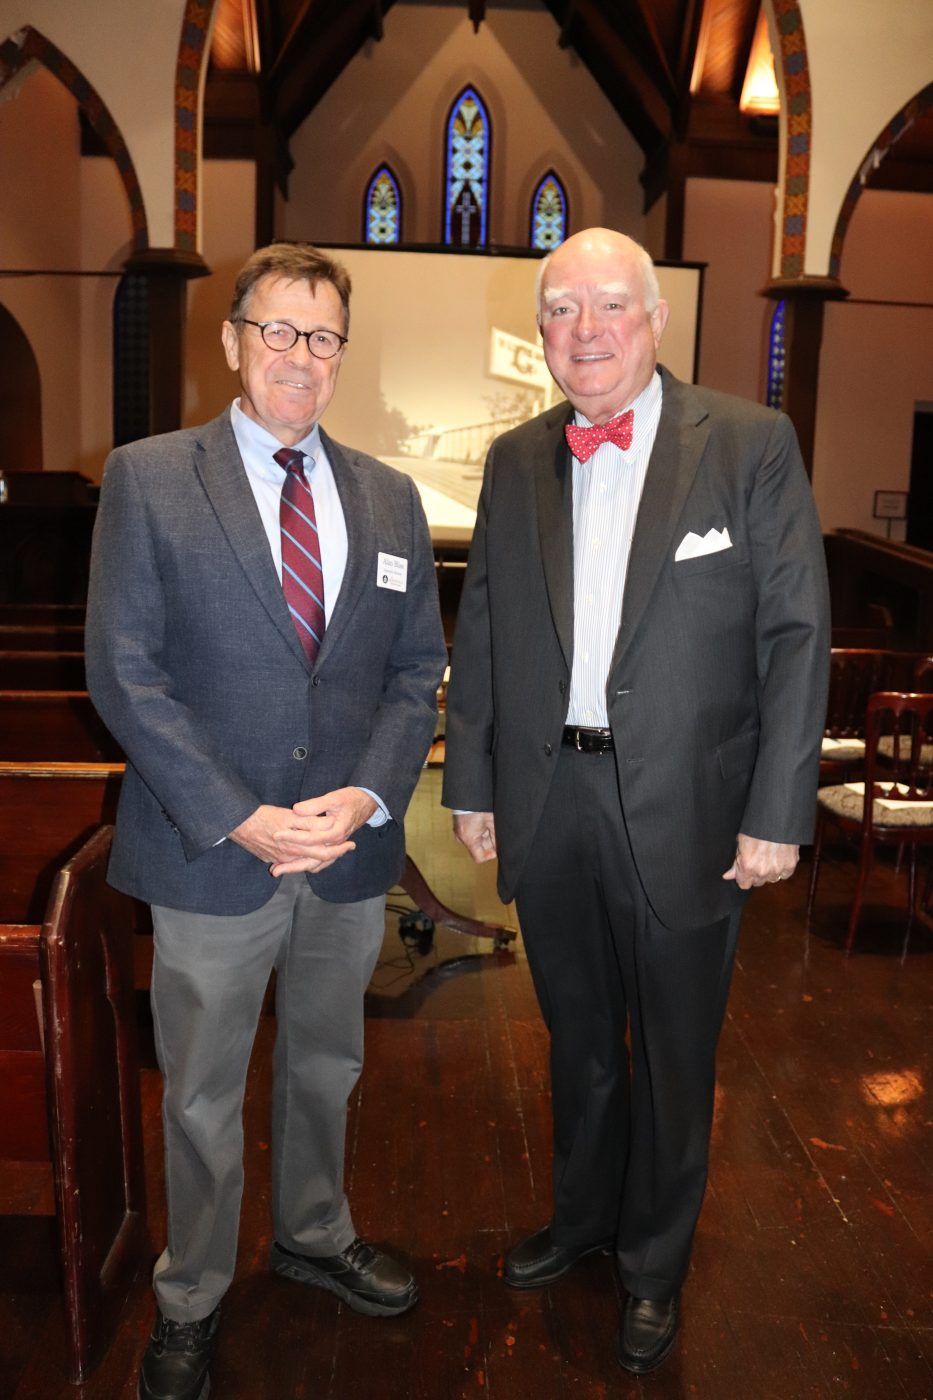 Dr. Alan Bliss, JHS executive director, with JF Bryan IV, guest speaker and former president of Independent Life Insurance